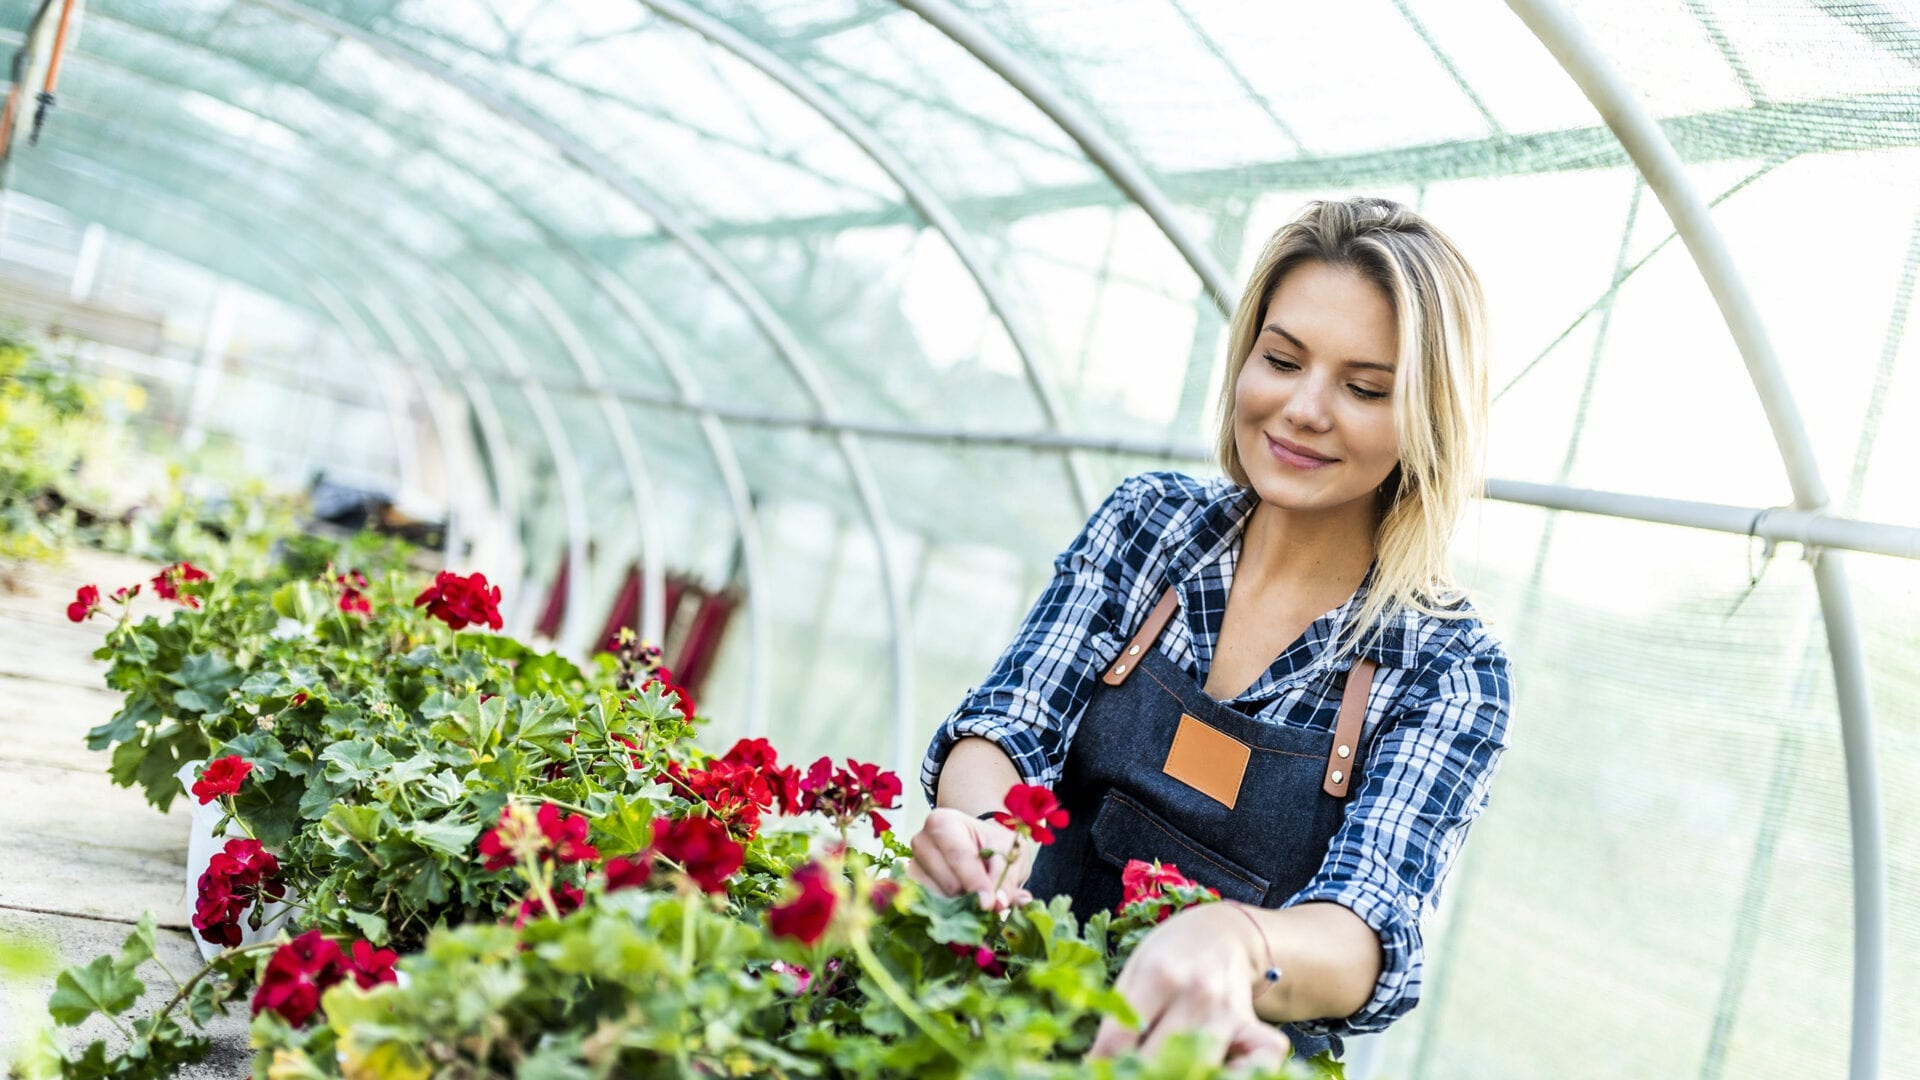 Woman pruning plants in a greenhouse